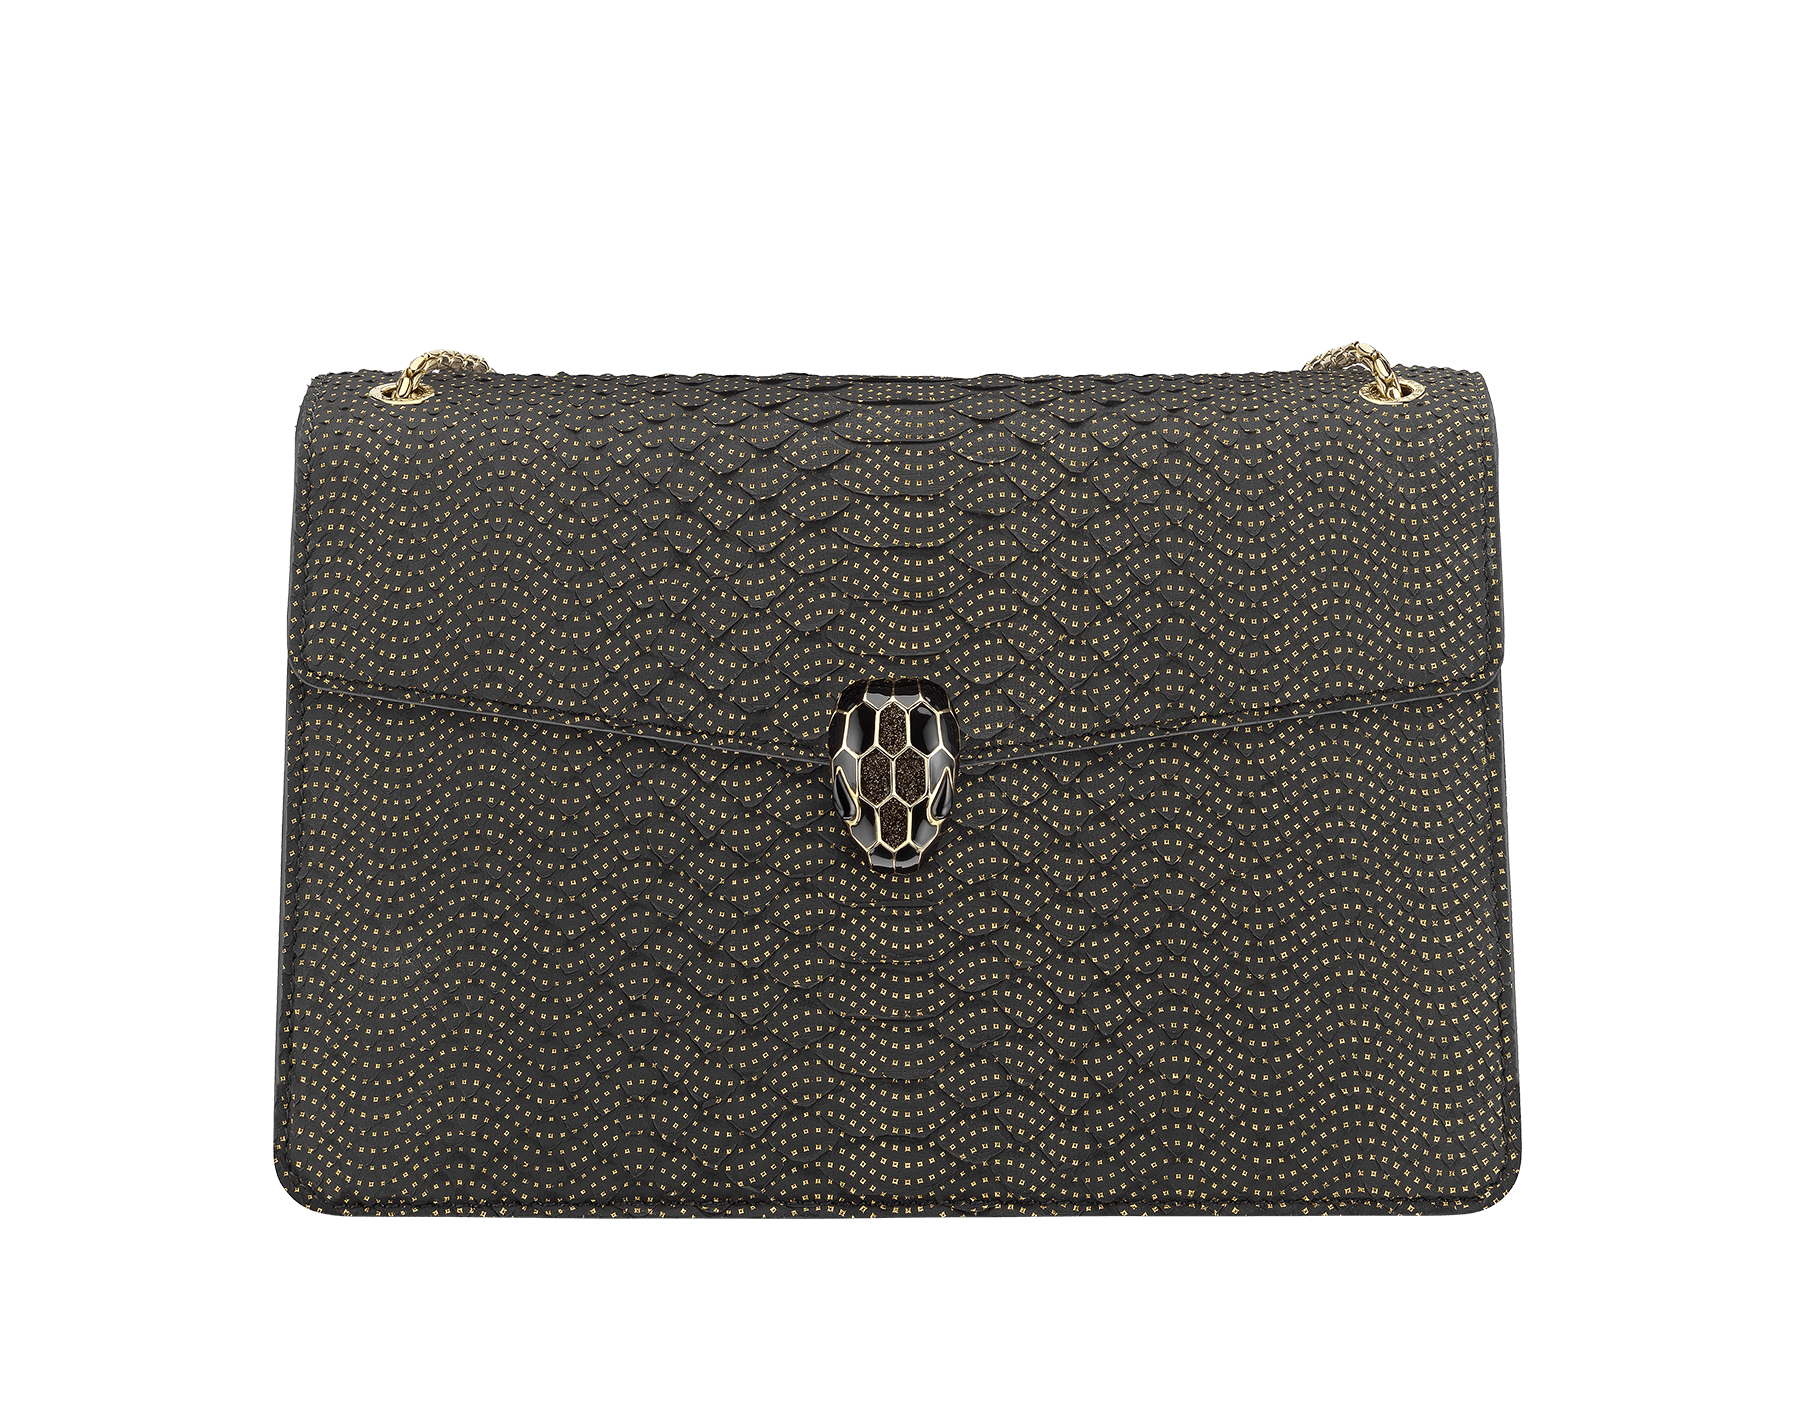 """""""Serpenti Forever"""" shoulder bag in black Fil Coupé python skin. Iconic snakehead closure in light rose gold plated brass enriched with glitter bronze and shiny black enamel and green malachite eyes 287320 image 1"""